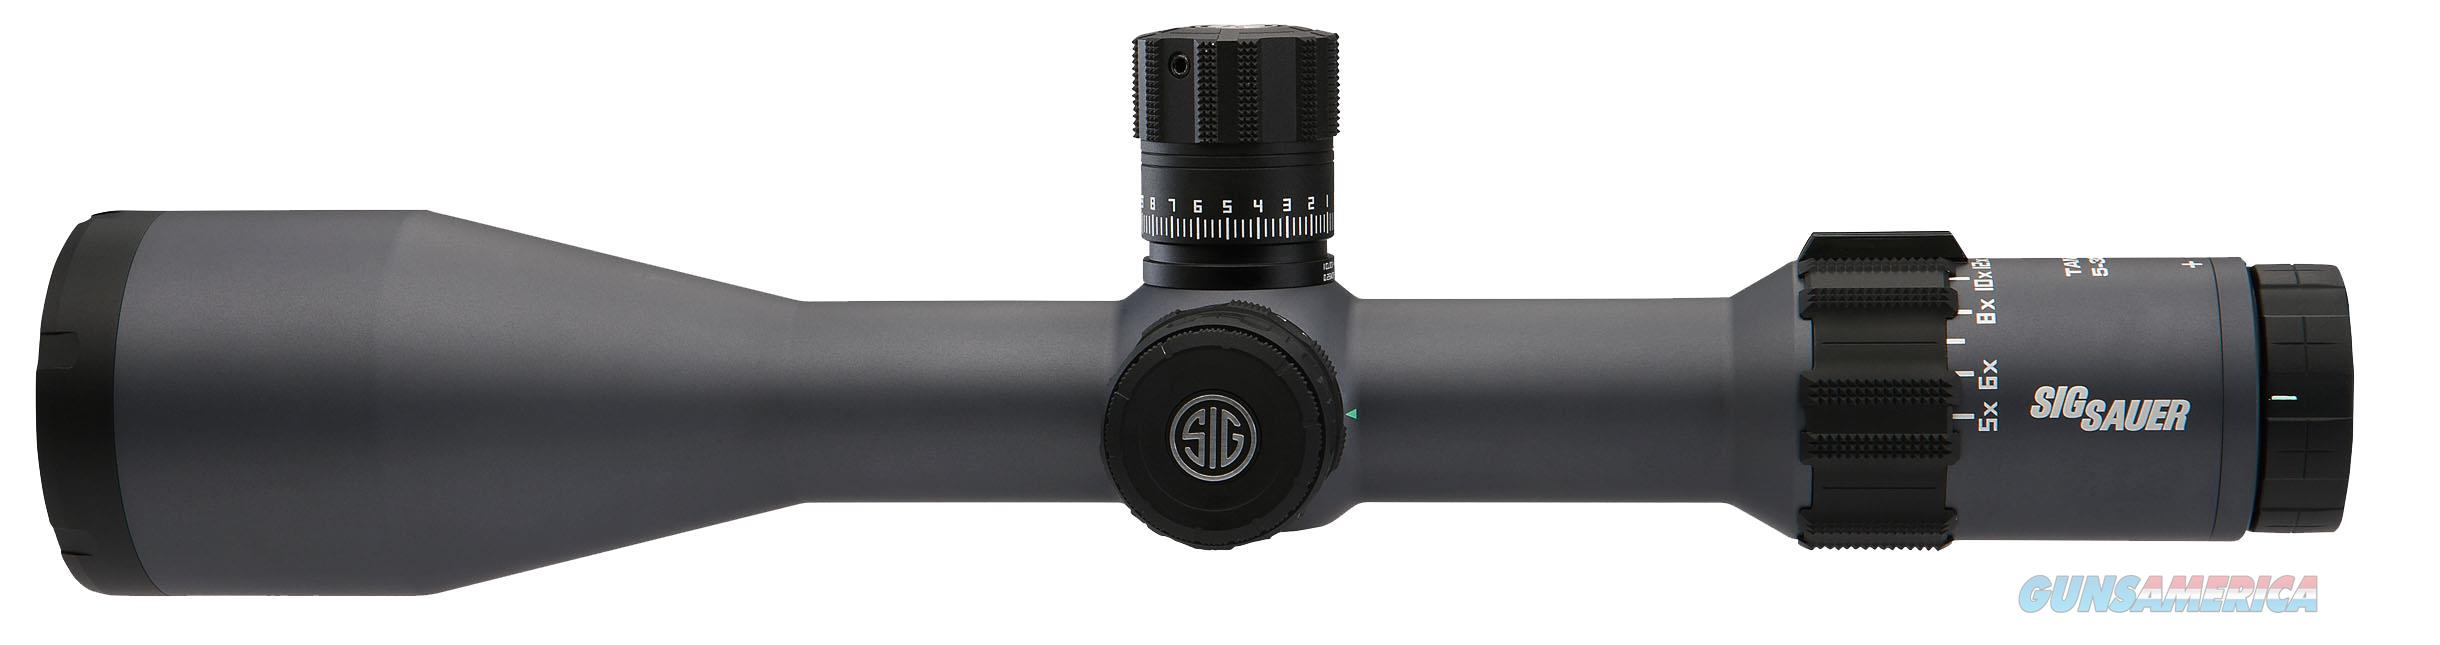 Sig Sauer Electro-Optics Sot65013 Tango6 5-30X 56Mm Obj 18.9-3.3 Ft @ 100 Yds Fov 34Mm Tube Graphite Gray Illuminated Moa Crosshair SOT65013  Non-Guns > Scopes/Mounts/Rings & Optics > Rifle Scopes > Variable Focal Length